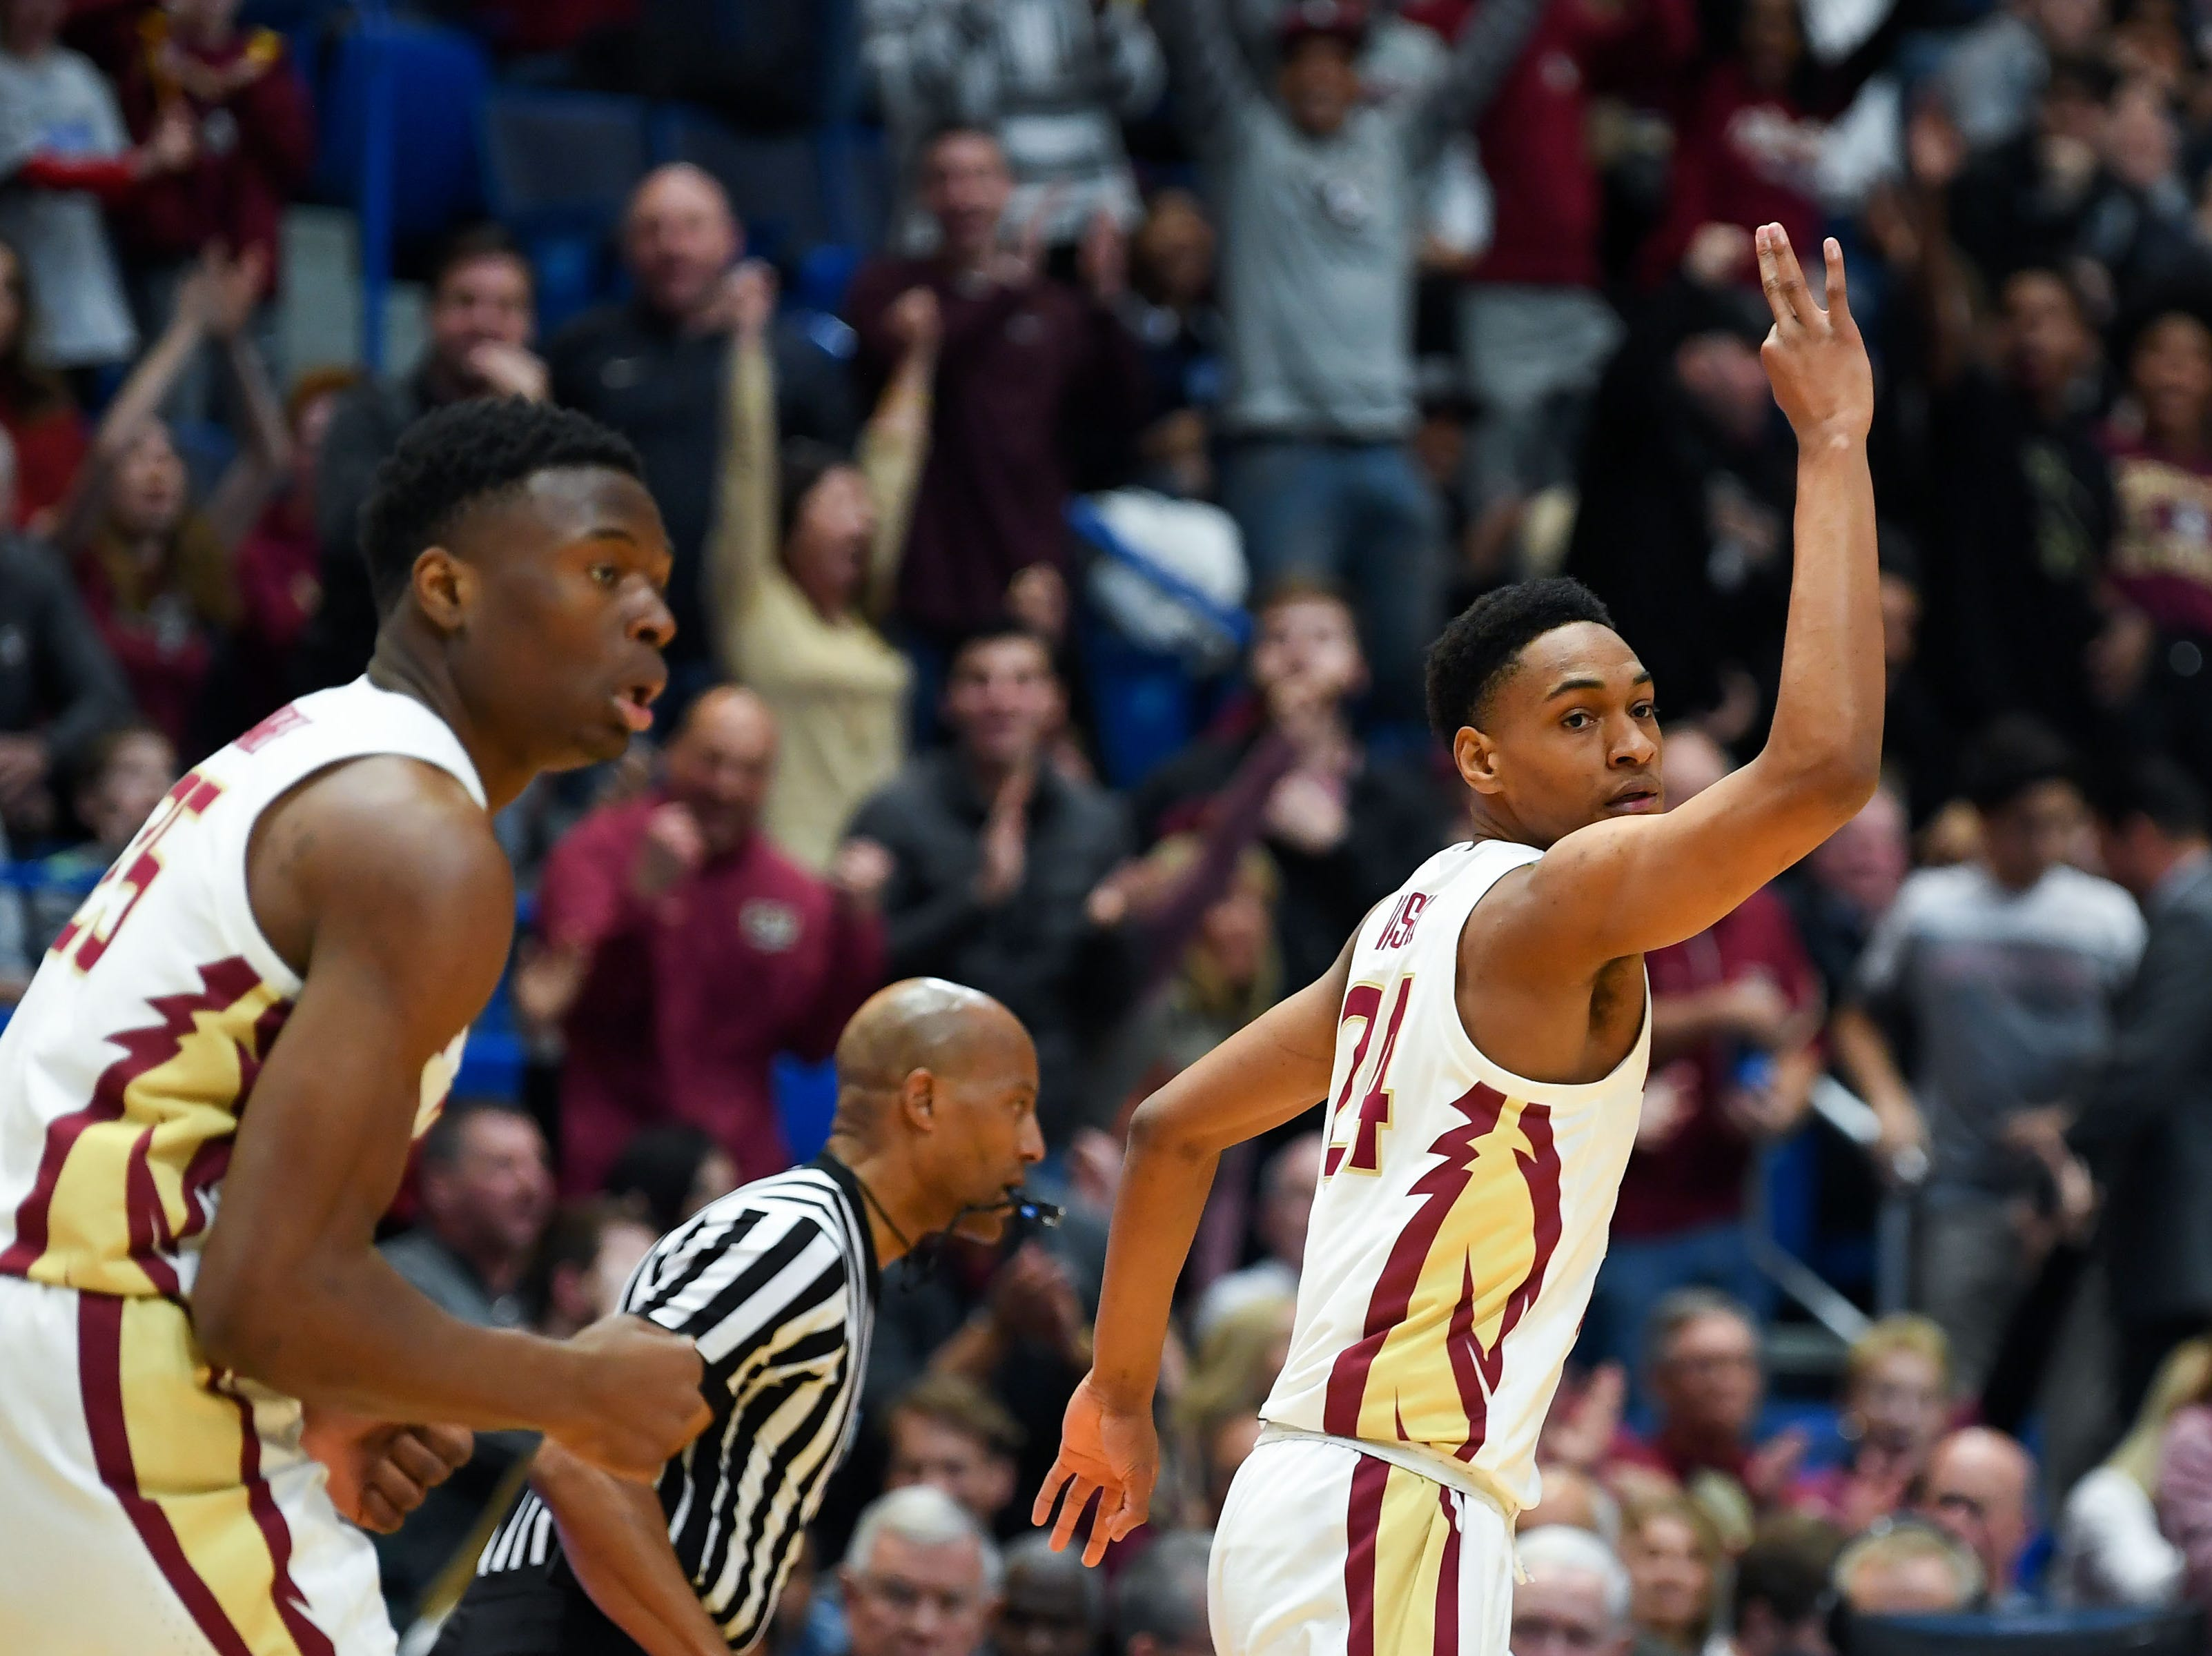 Mar 23, 2019; Hartford, CT, USA; Florida State Seminoles guard Devin Vassell (24) reacts after a score against the Murray State Racers during the first half of a game in the second round of the 2019 NCAA Tournament at XL Center. Mandatory Credit: Robert Deutsch-USA TODAY Sports